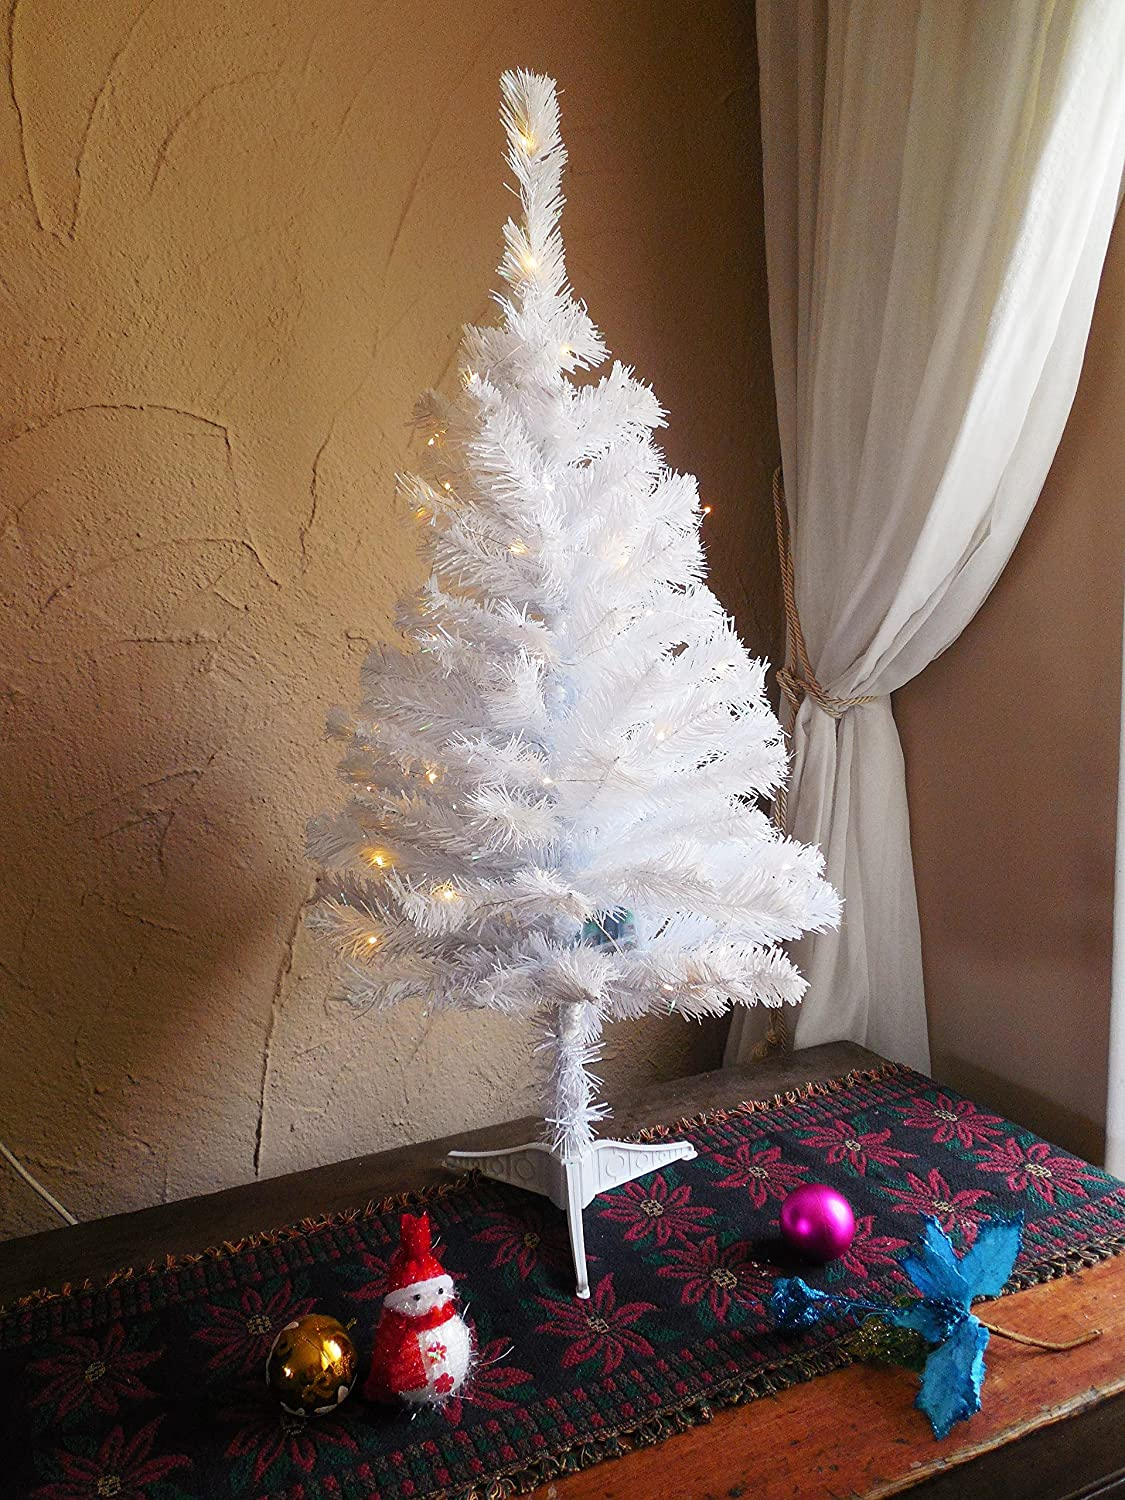 3' White Christmas tree with LED light/Tabletop samall Sparkling White Christmas tree Holiday Stuff